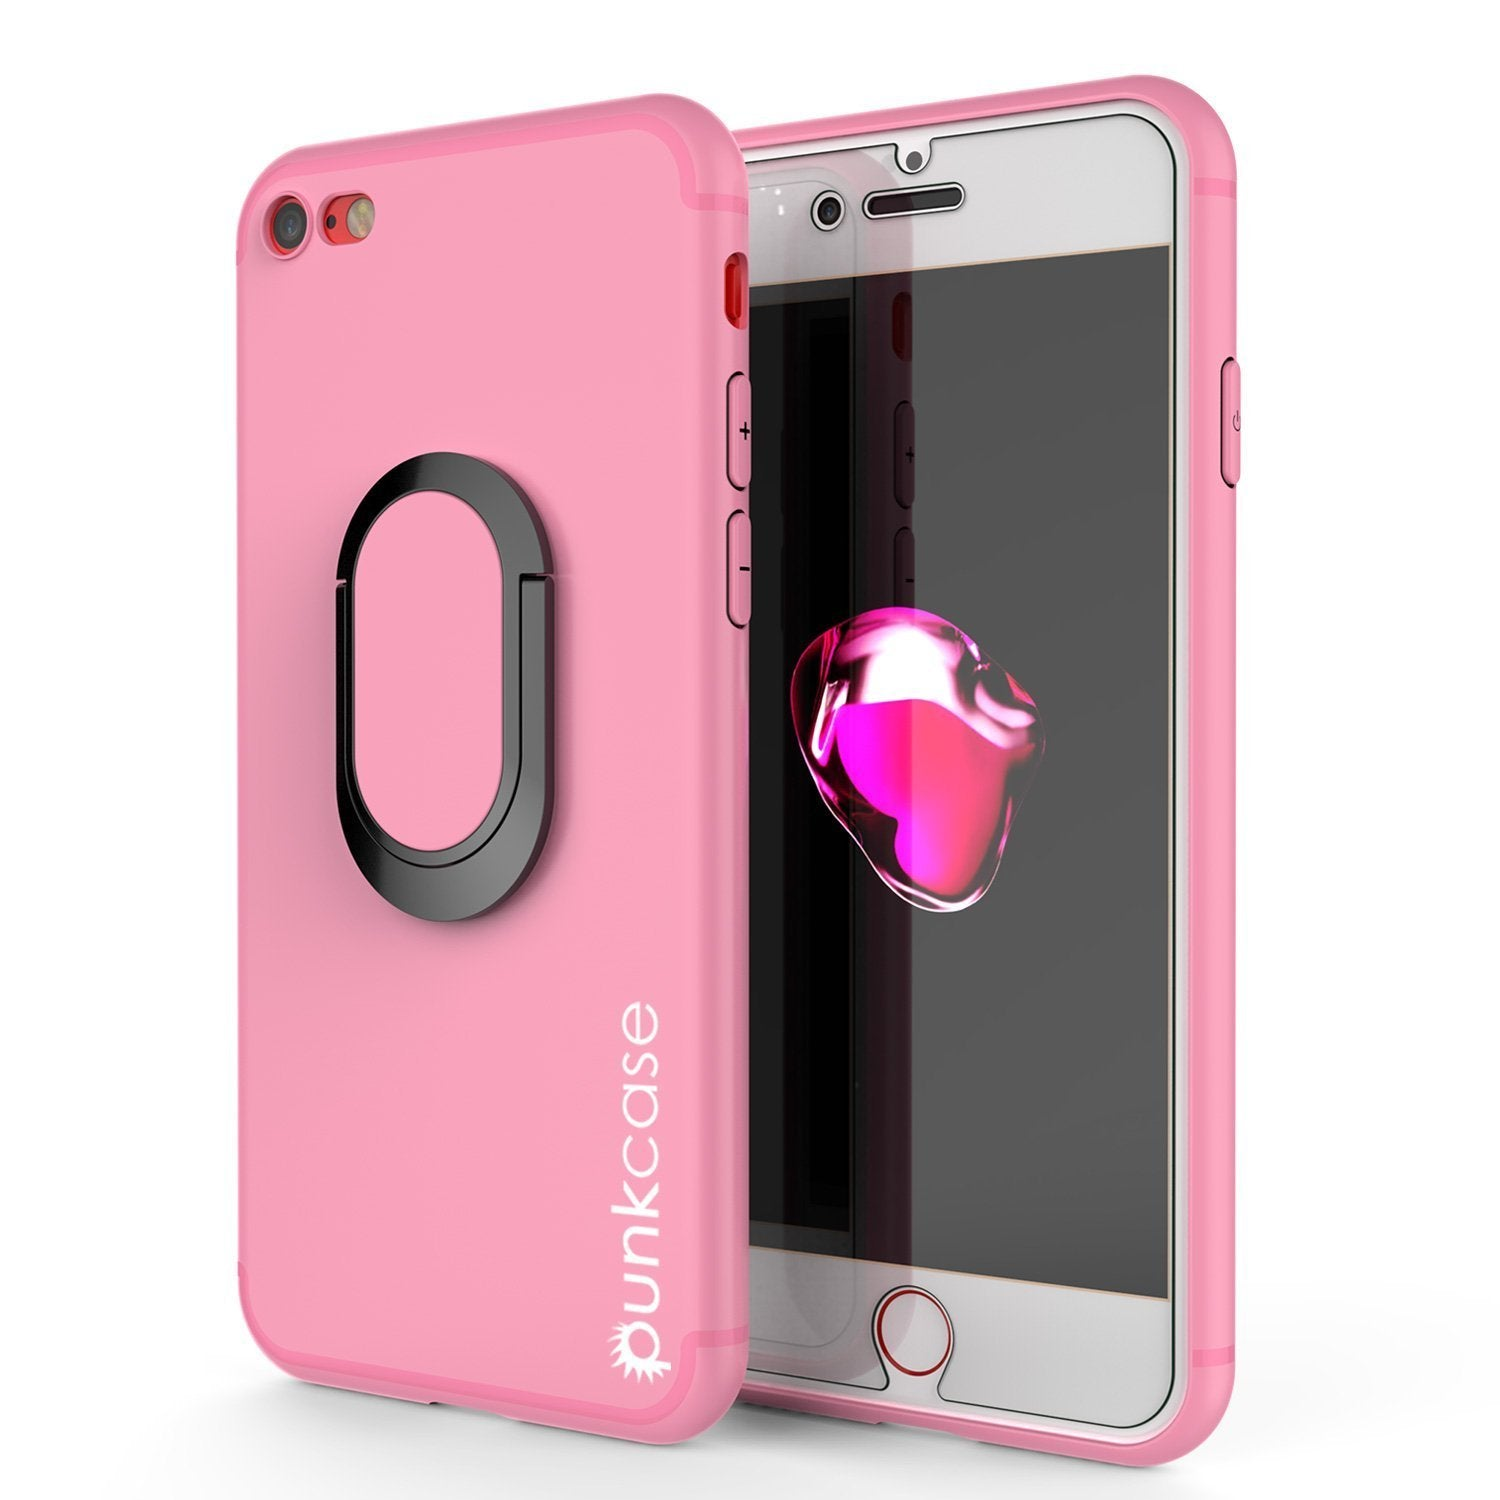 iPhone 8 Case, Punkcase Magnetix Protective TPU Cover W/ Kickstand, Ring Grip Holder & Metal Plate for Magnetic Car Phone Mount PLUS Tempered Glass Screen Protector for Apple iPhone 6 /7 & 8 [pink]